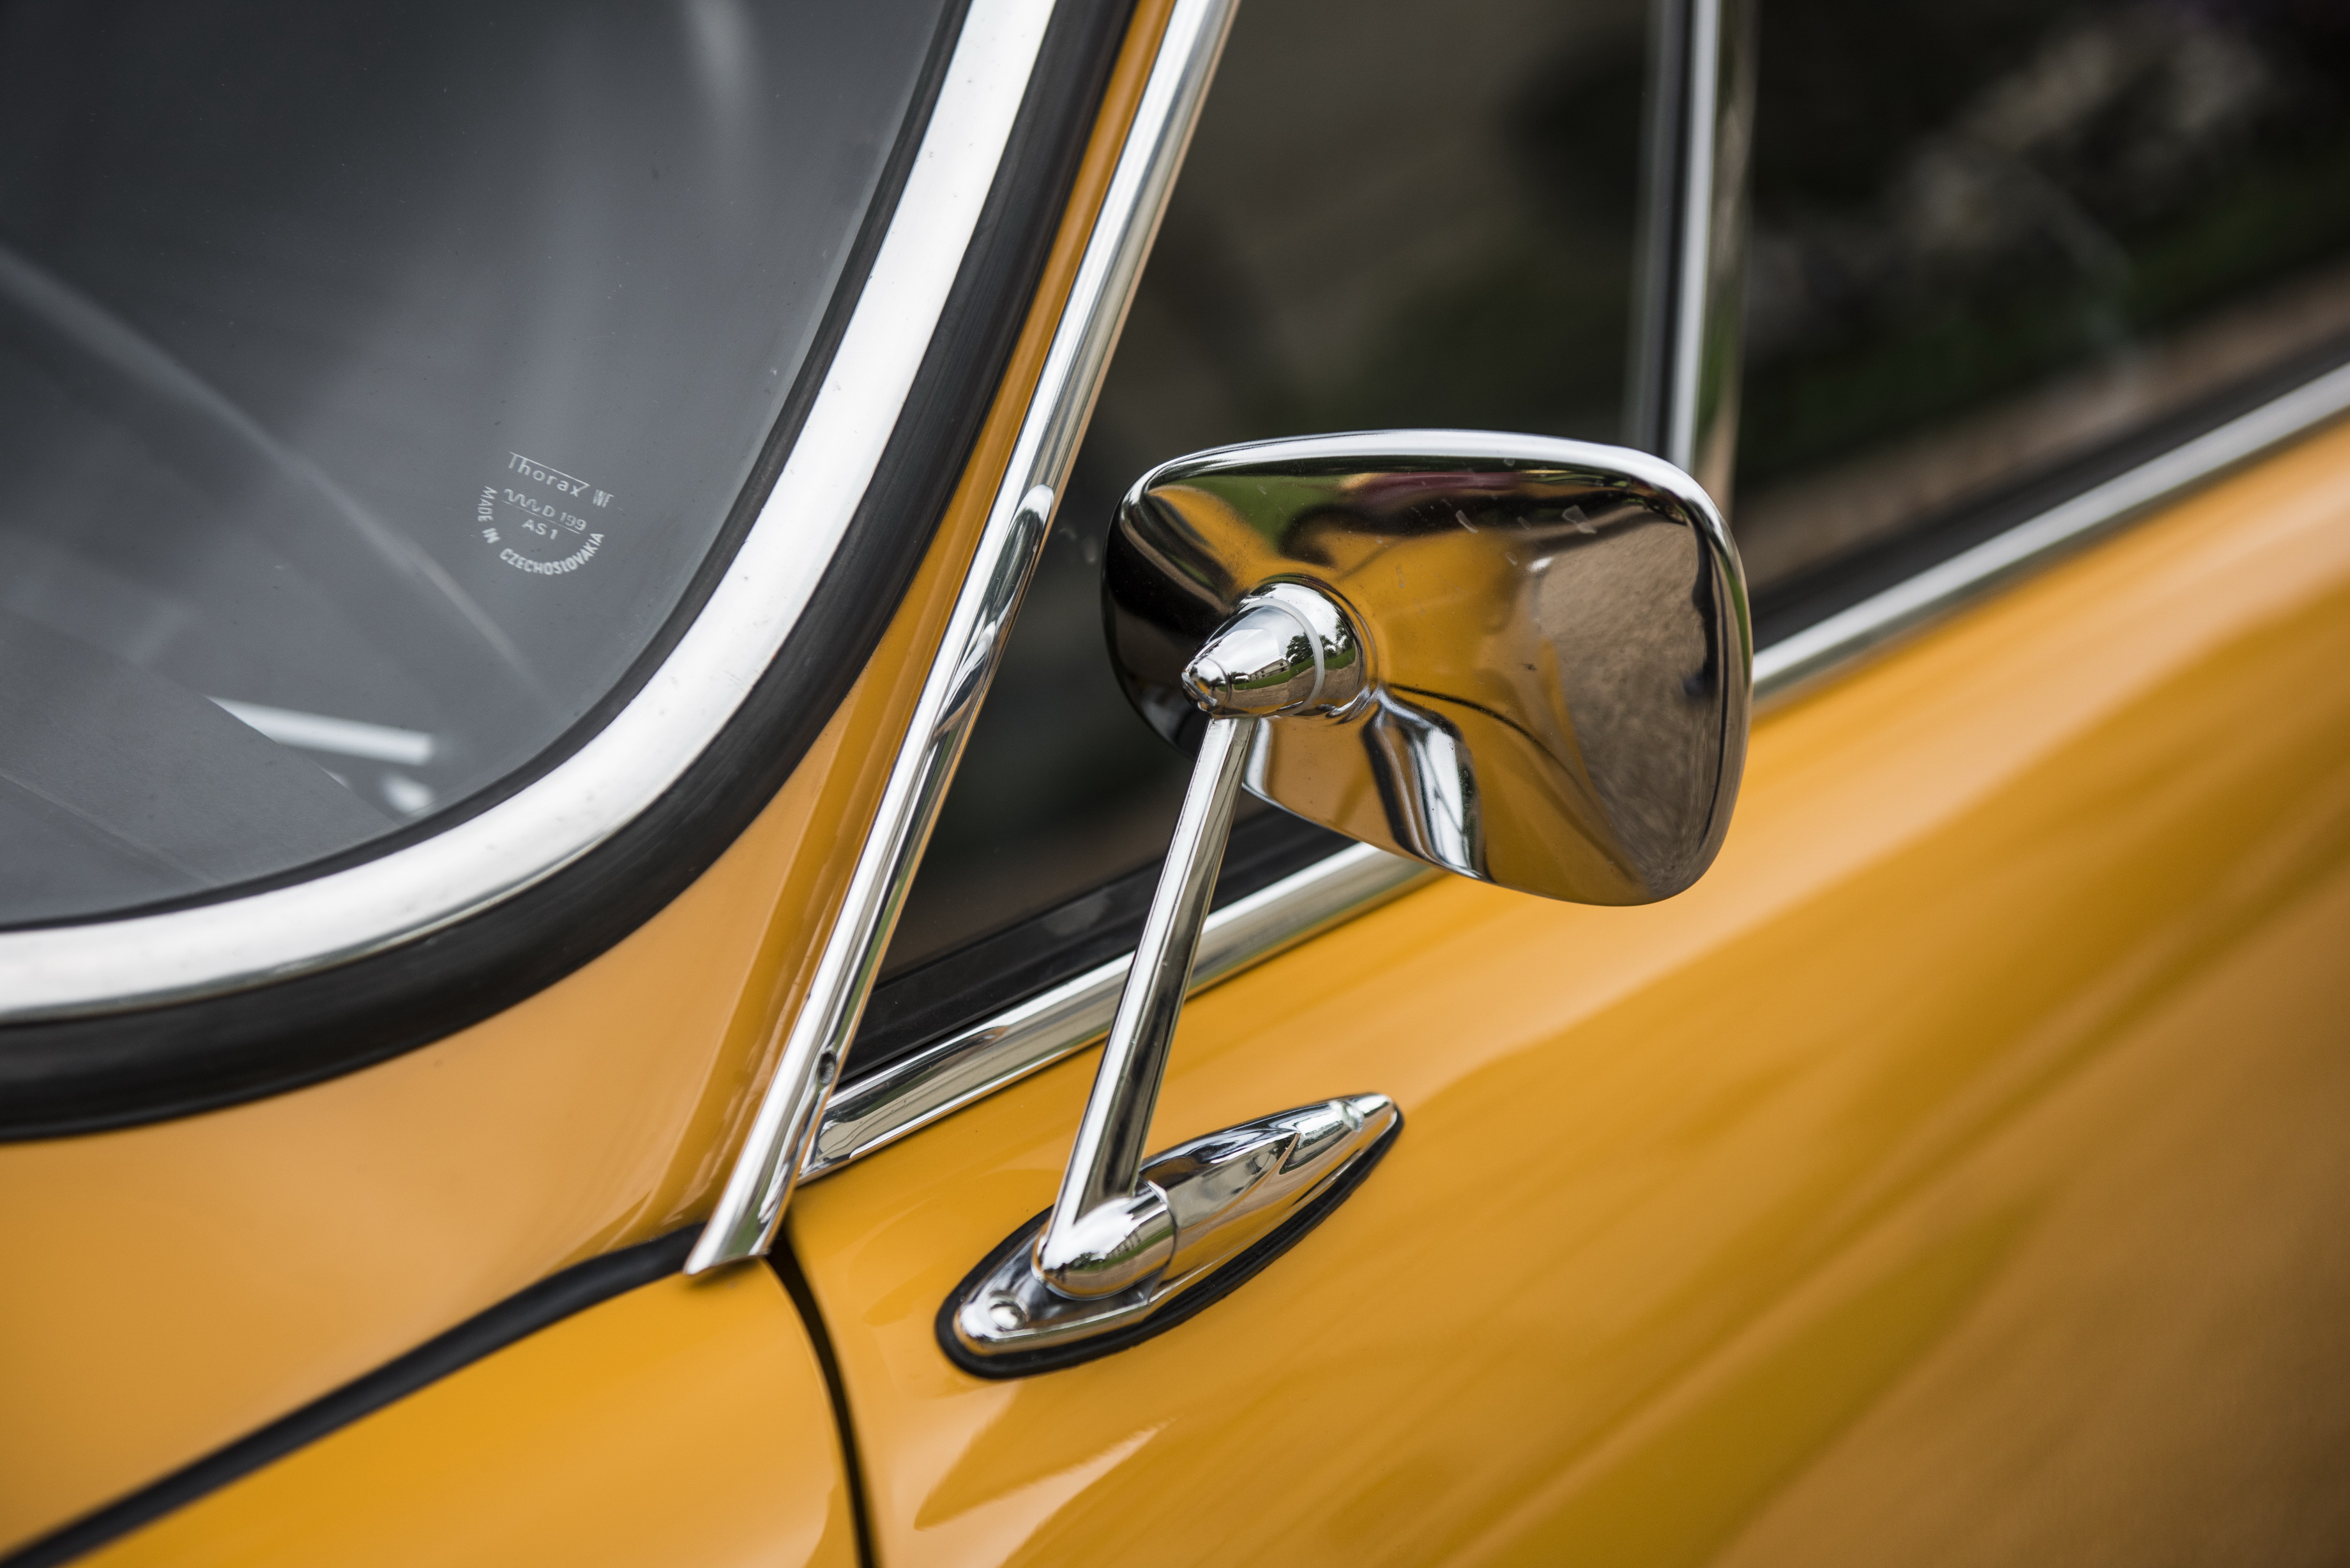 50 years of the 110 R: Half a century ago, SKODA presented its legendary sports coupé - Image 6